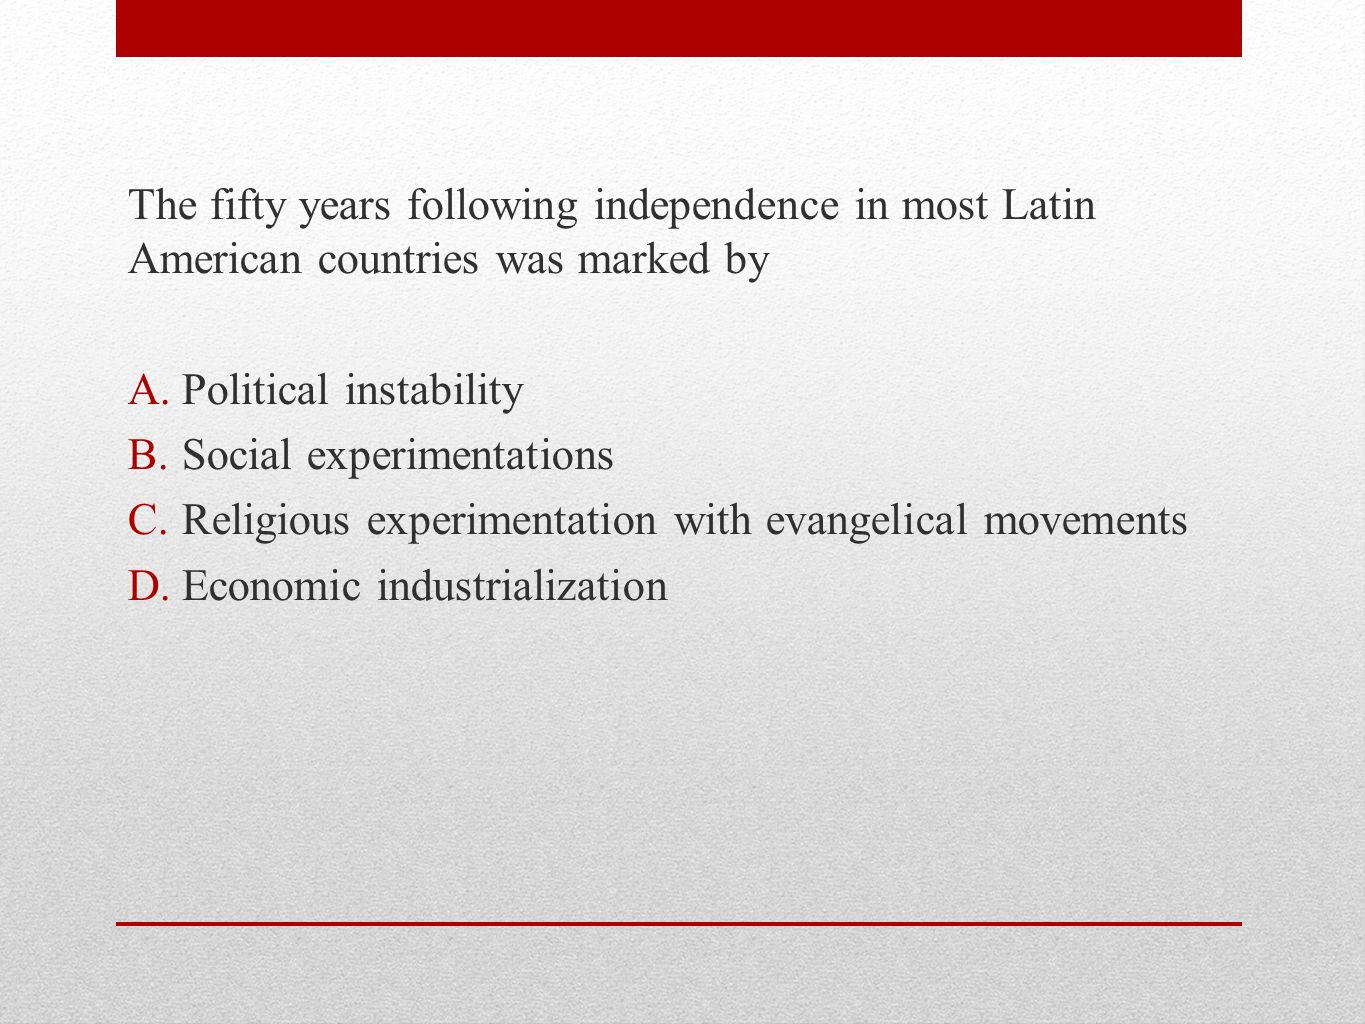 The fifty years following independence in most Latin American countries was marked by